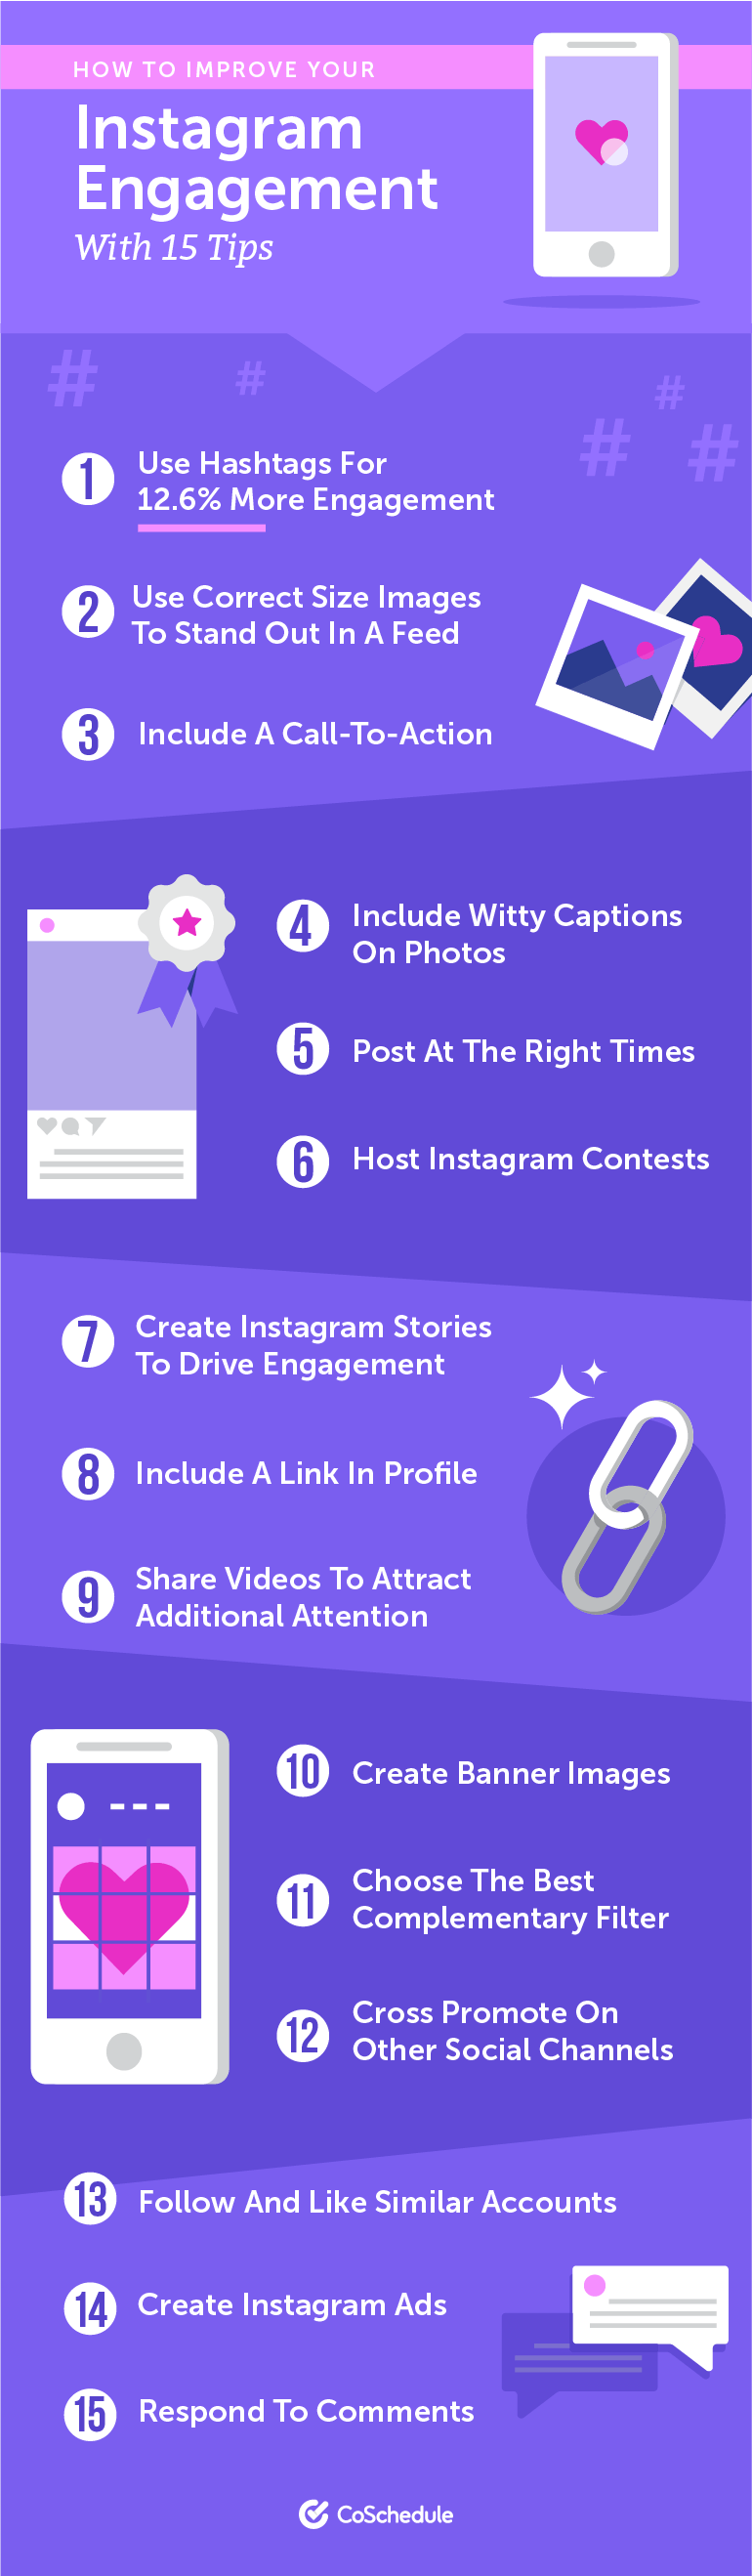 15 Ways to Improve Instagram Engagement: An Infographic